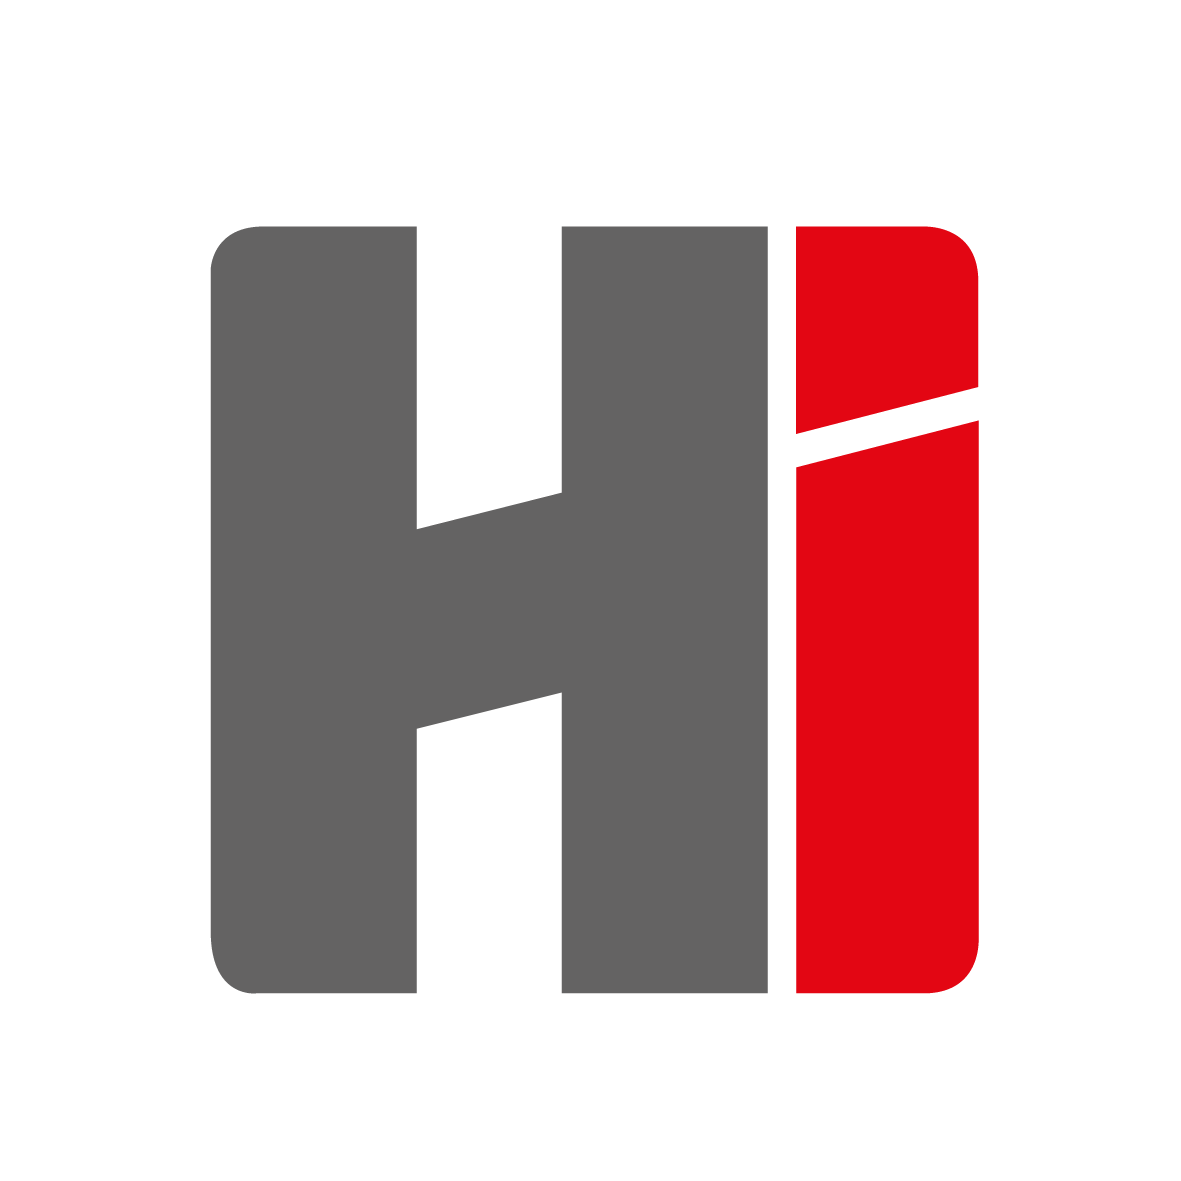 HI_Logo_Finale_Version-01.png